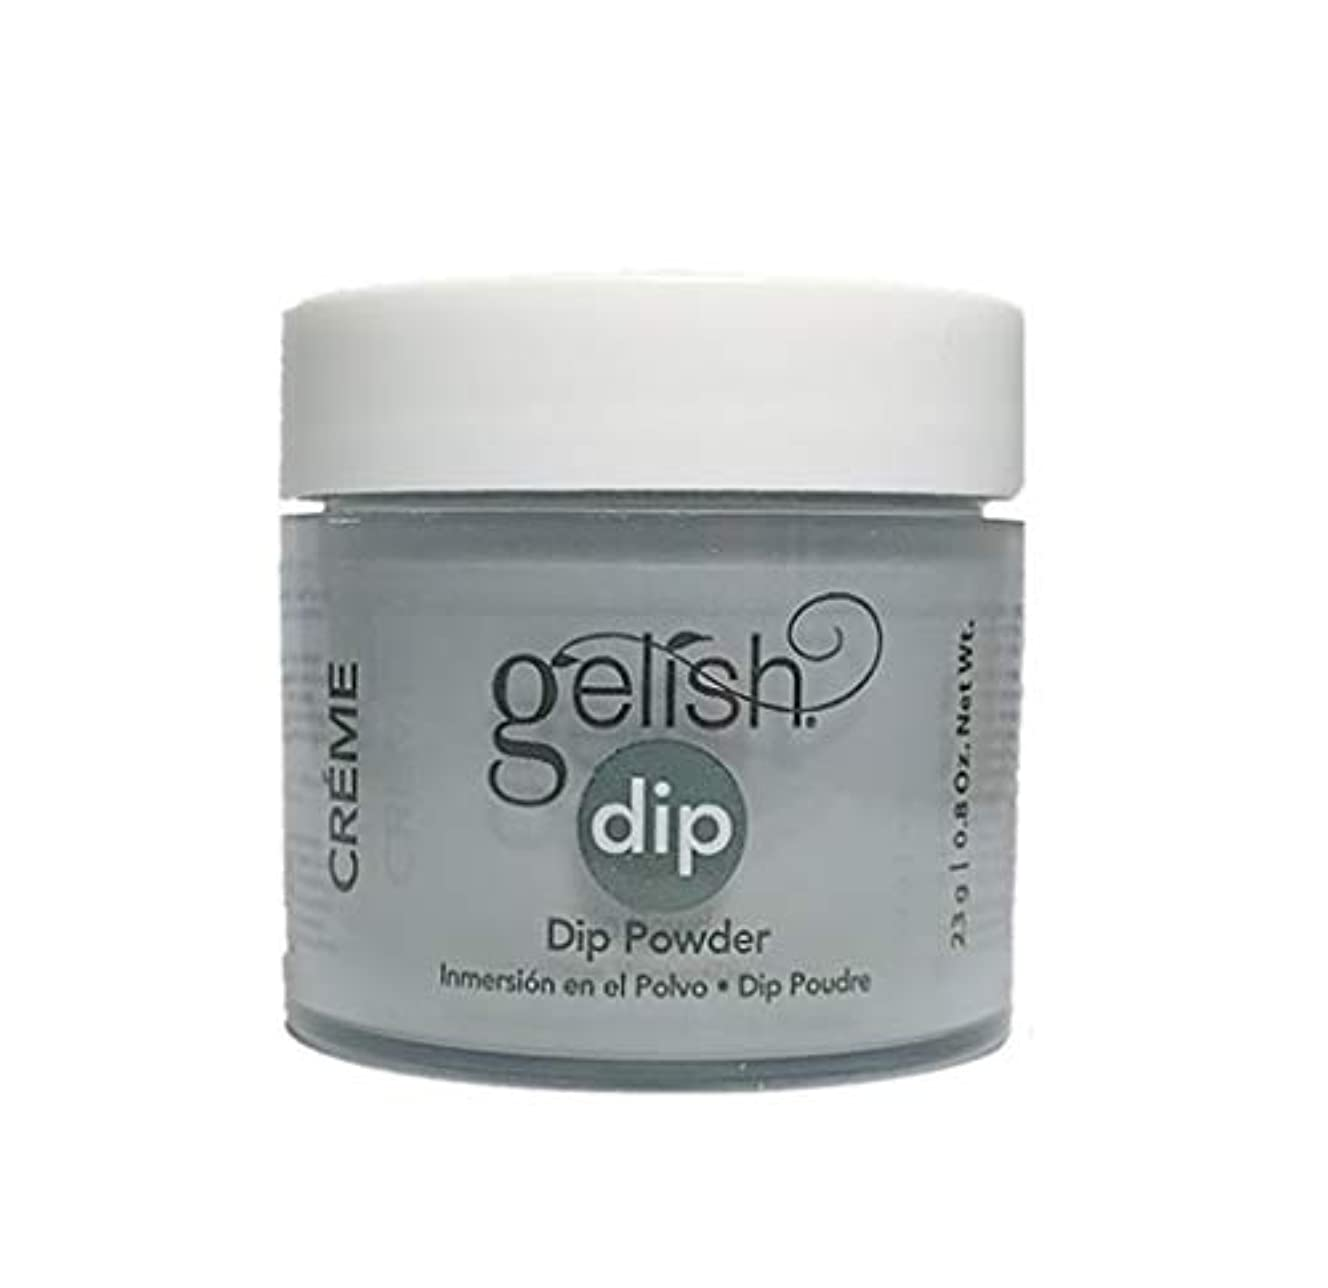 Harmony Gelish - Dip Powder - Fashion Week Chic - 23g / 0.8oz